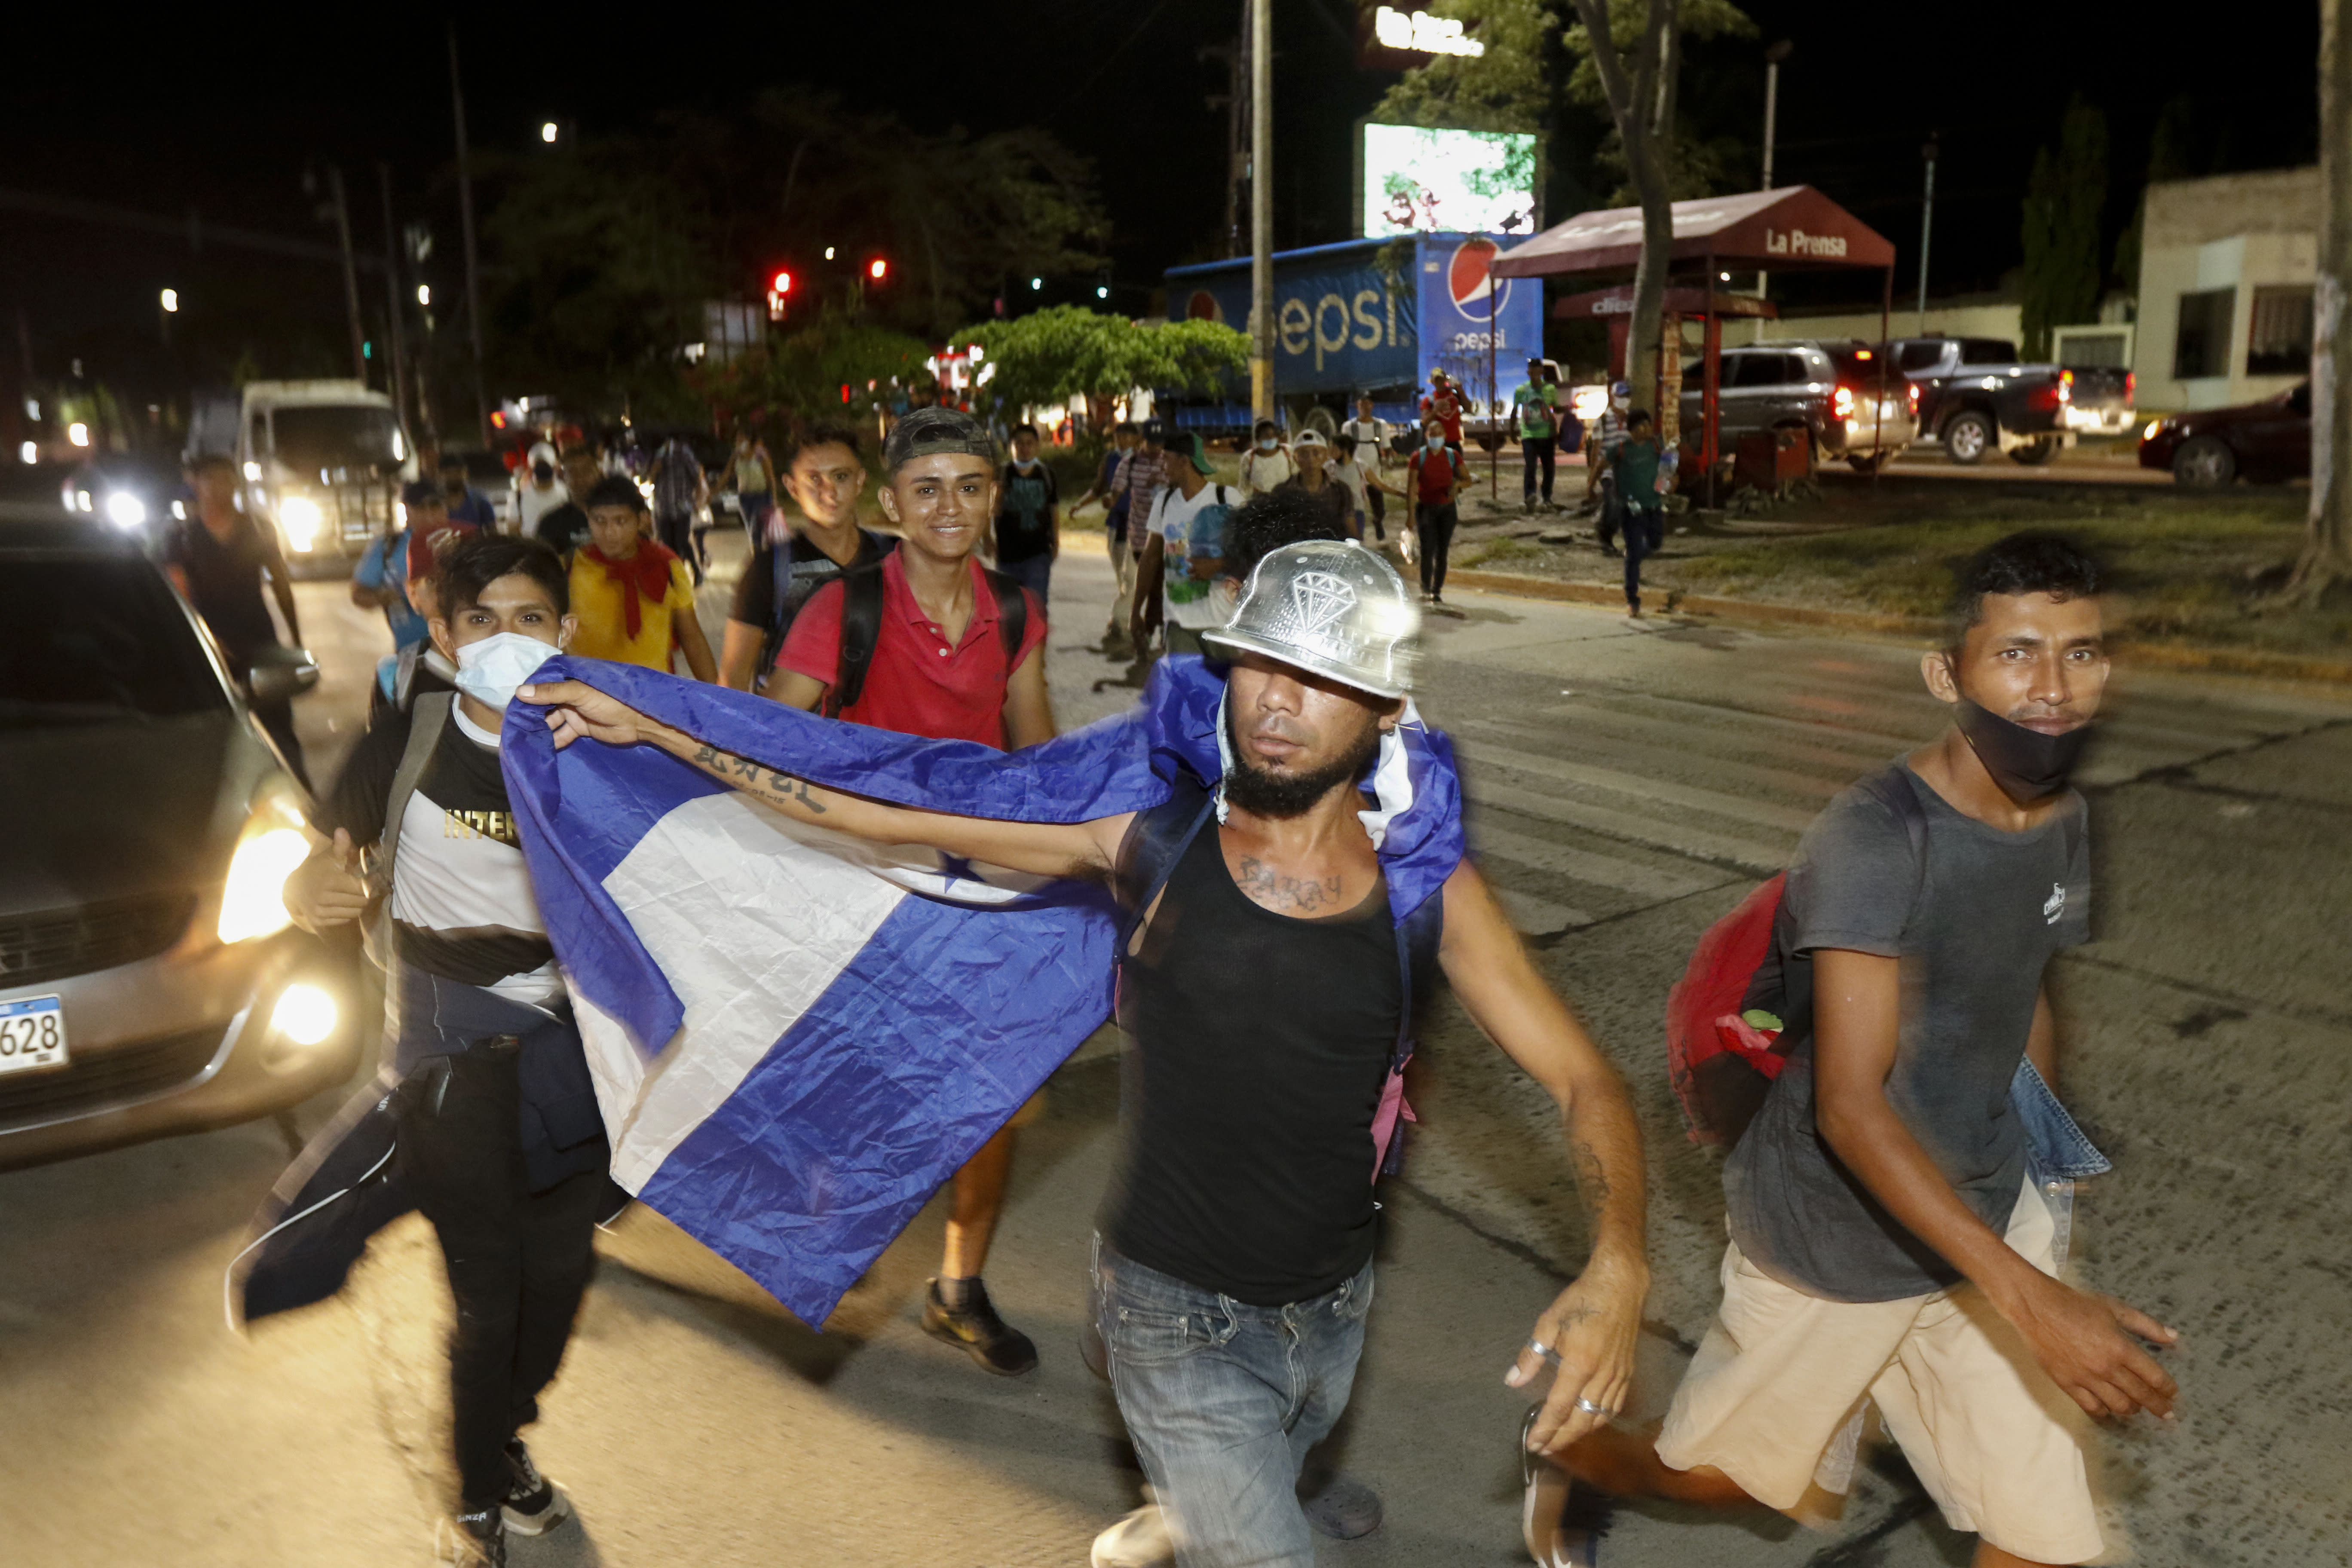 Migrants walk along a highway in hopes of reaching the distant United States, in San Pedro Sula, Honduras, Wednesday, Sept. 30, 2020. Hundreds of migrants have begun walking from this northern Honduras city toward the Guatemala border testing a well-trod migration route now in times of the new coronavirus. (AP Photo)